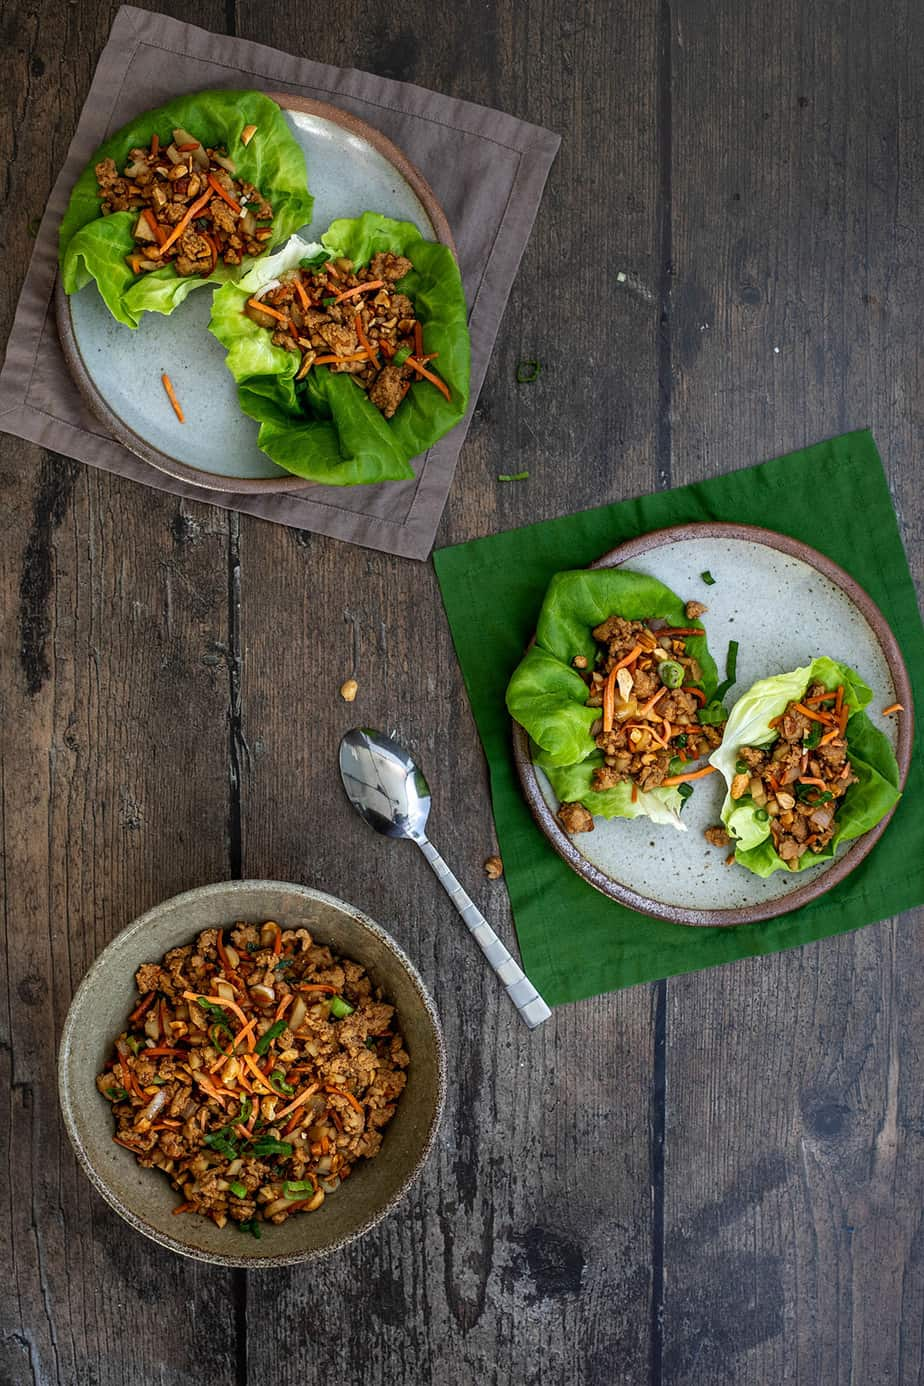 two plates with two pf changs chicken lettuce wraps each, a bowl with lettuce wrap filling